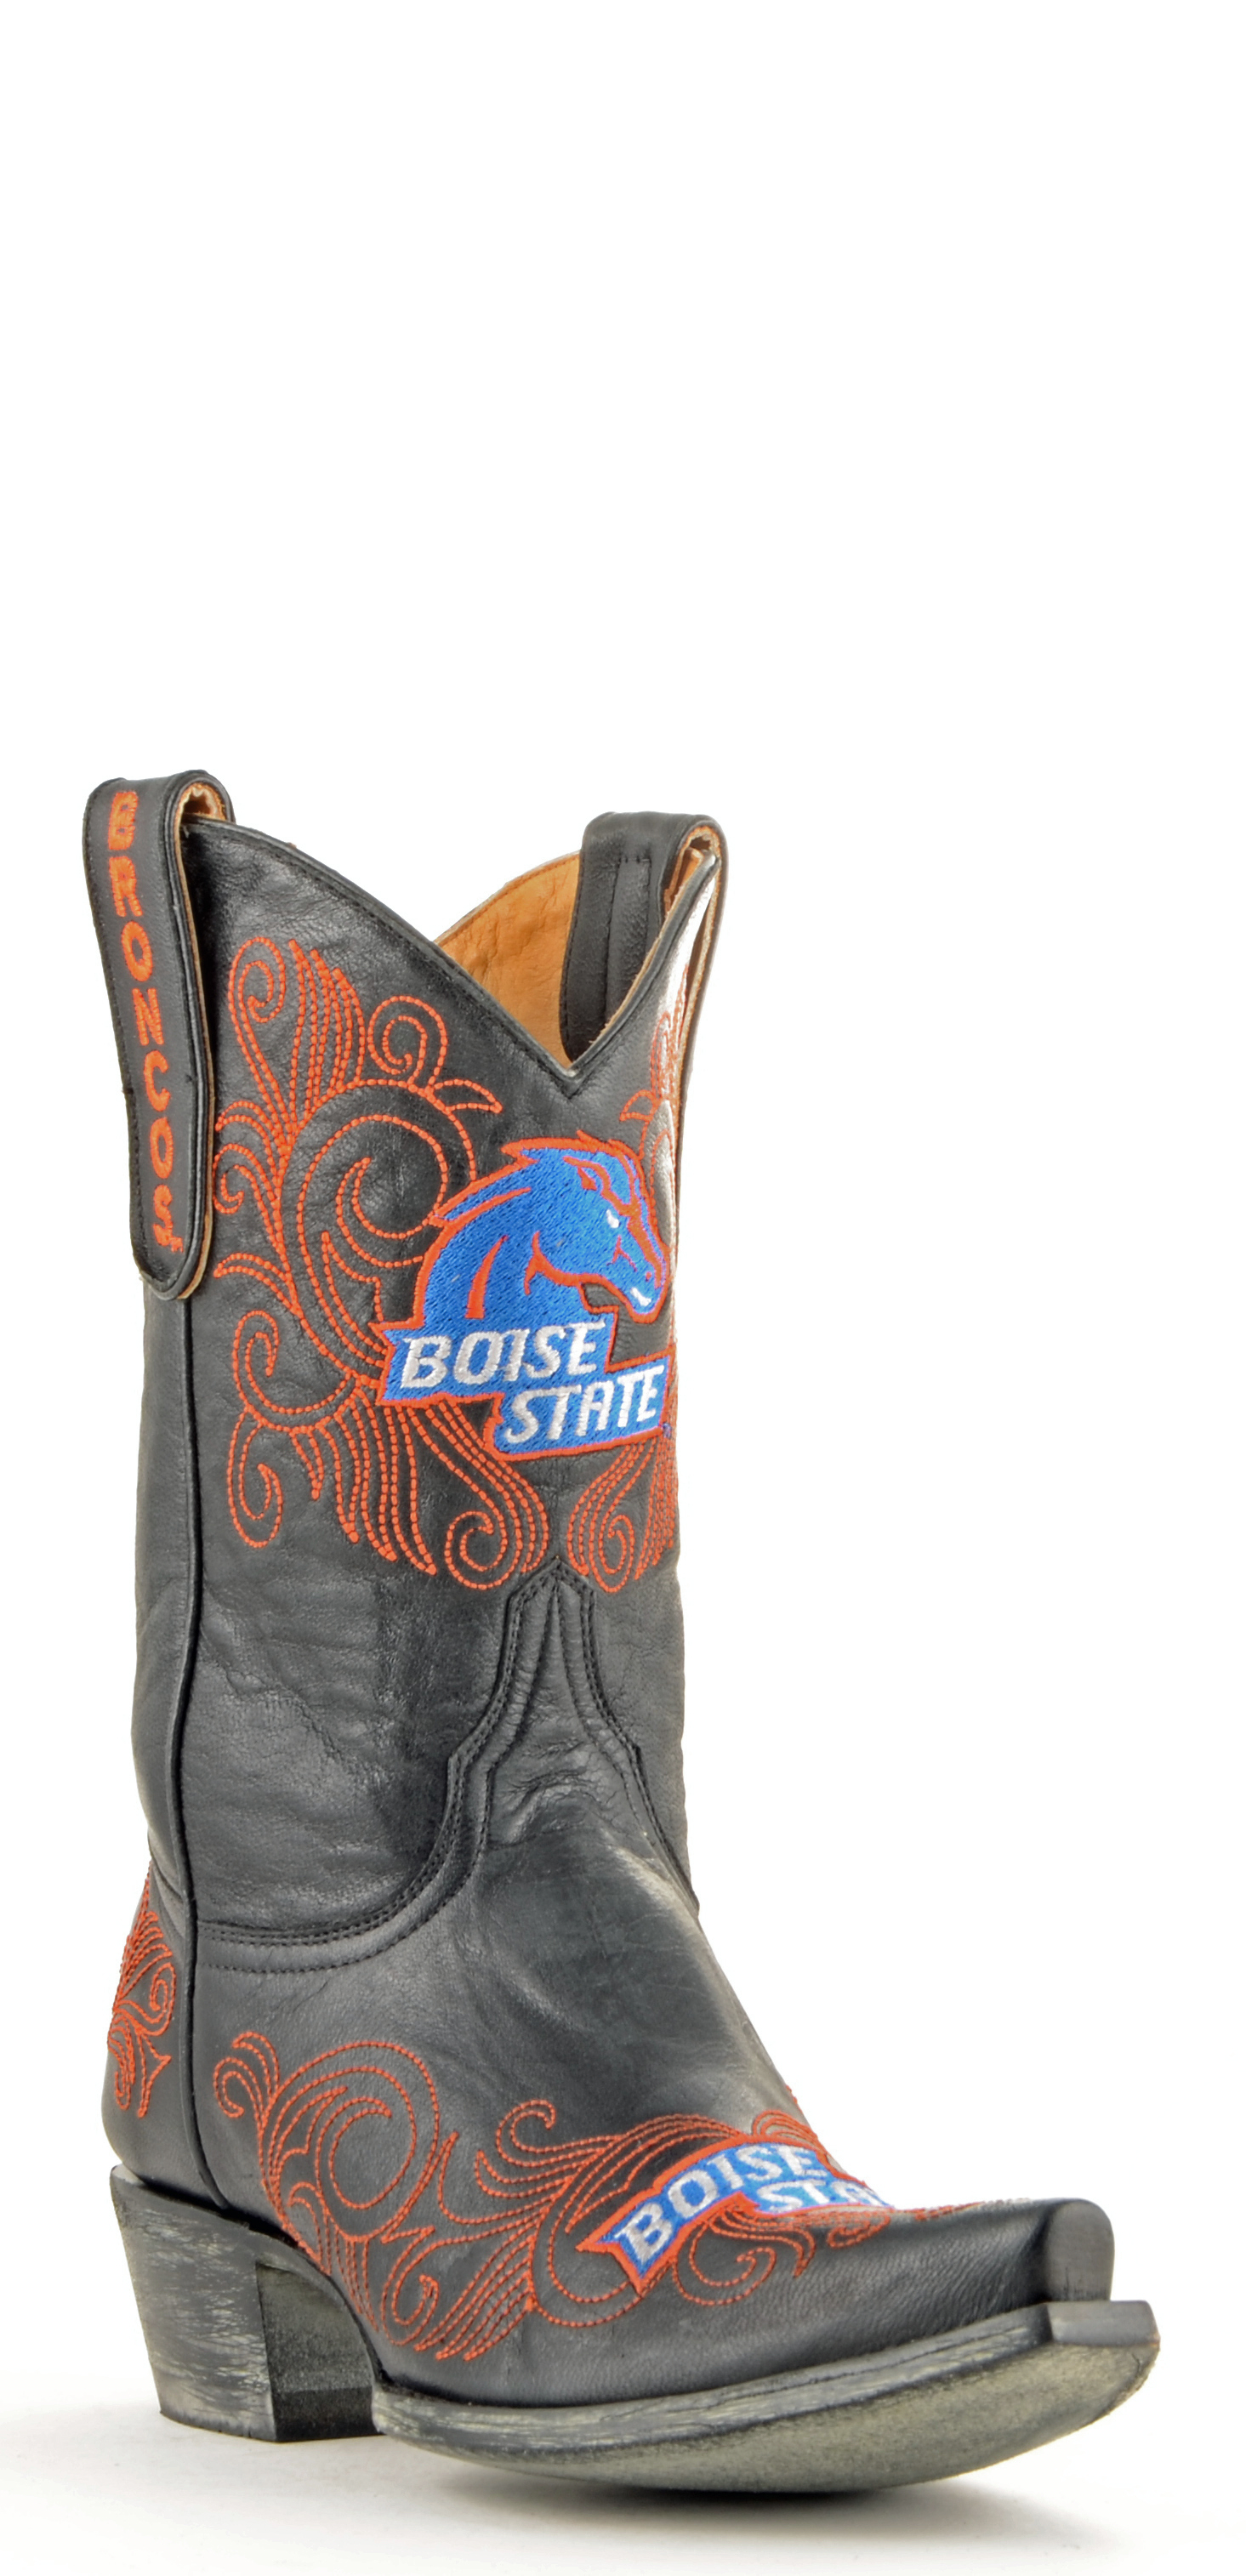 Gameday Boots Womens College Team Boise State Broncos Black BSU-L217-2 by GameDay Boots